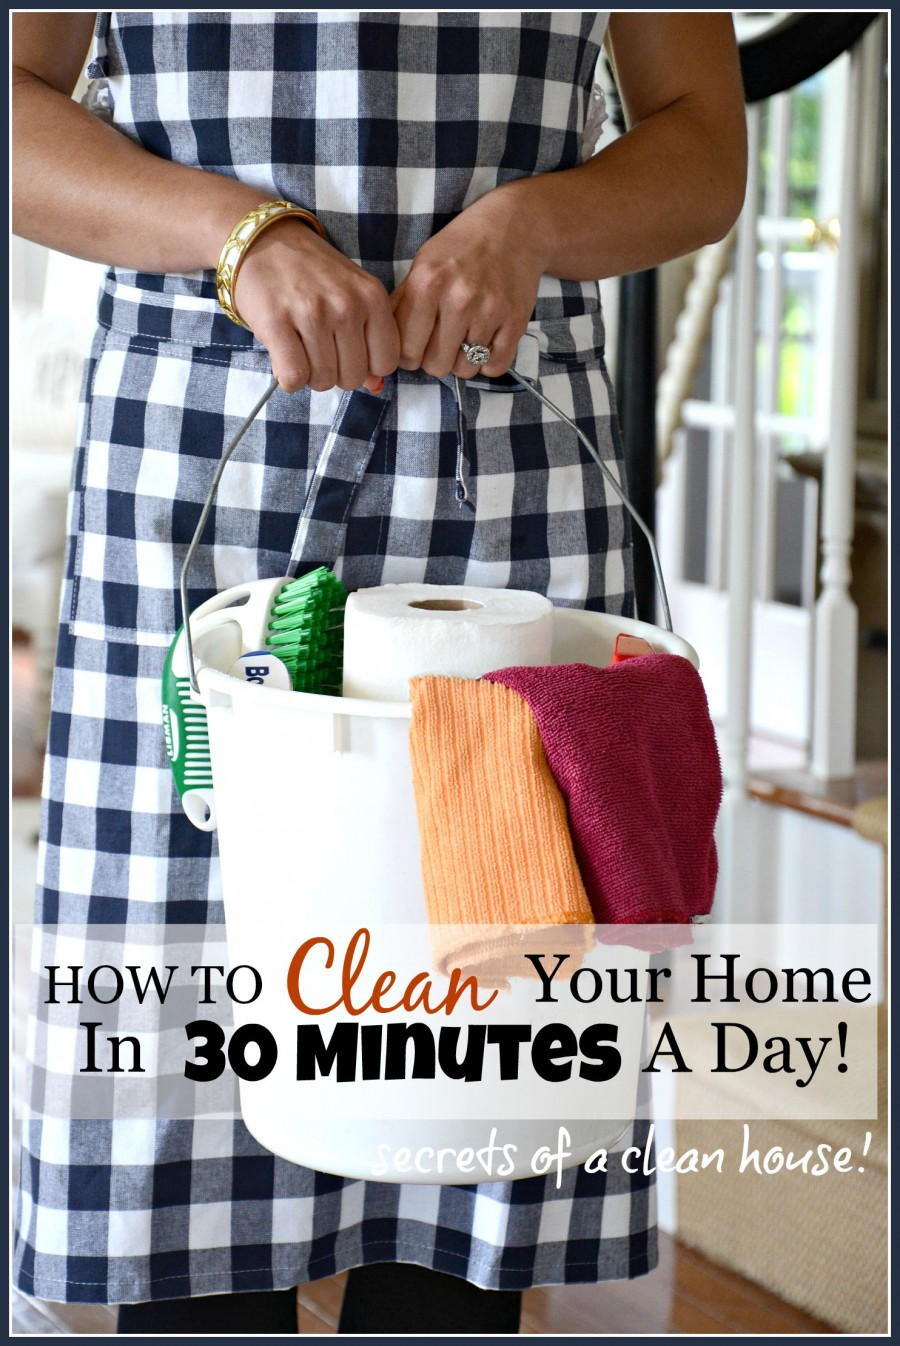 HOW TO CLEAN YOU HOME IN 30 MINUTES A DAY! Tips for a clean house-stonegableblog.com